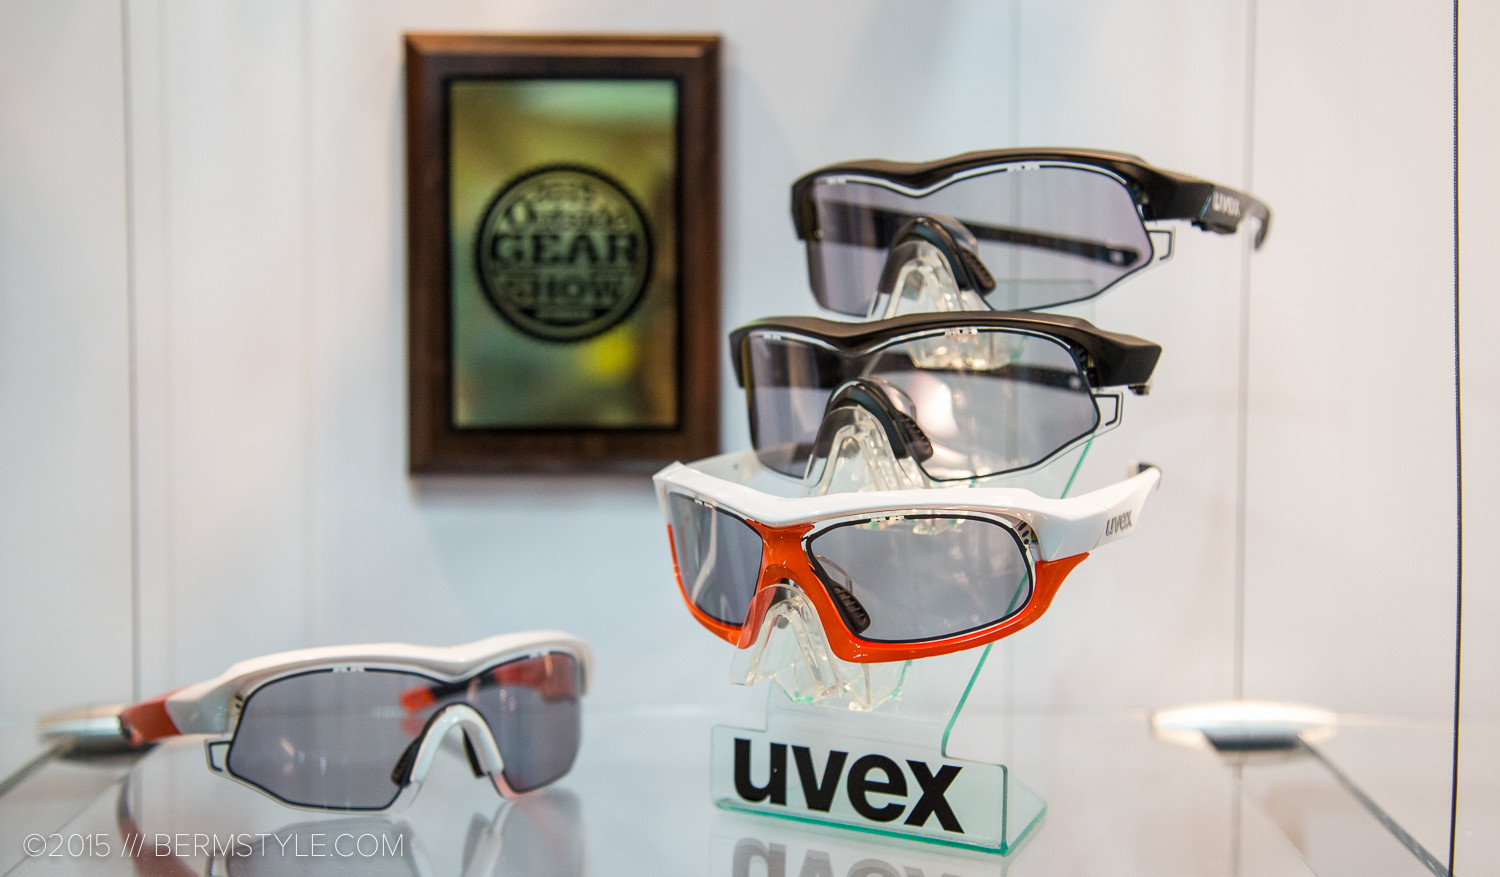 Uvex Variotronic Technology: Glasses and Goggles from the Future